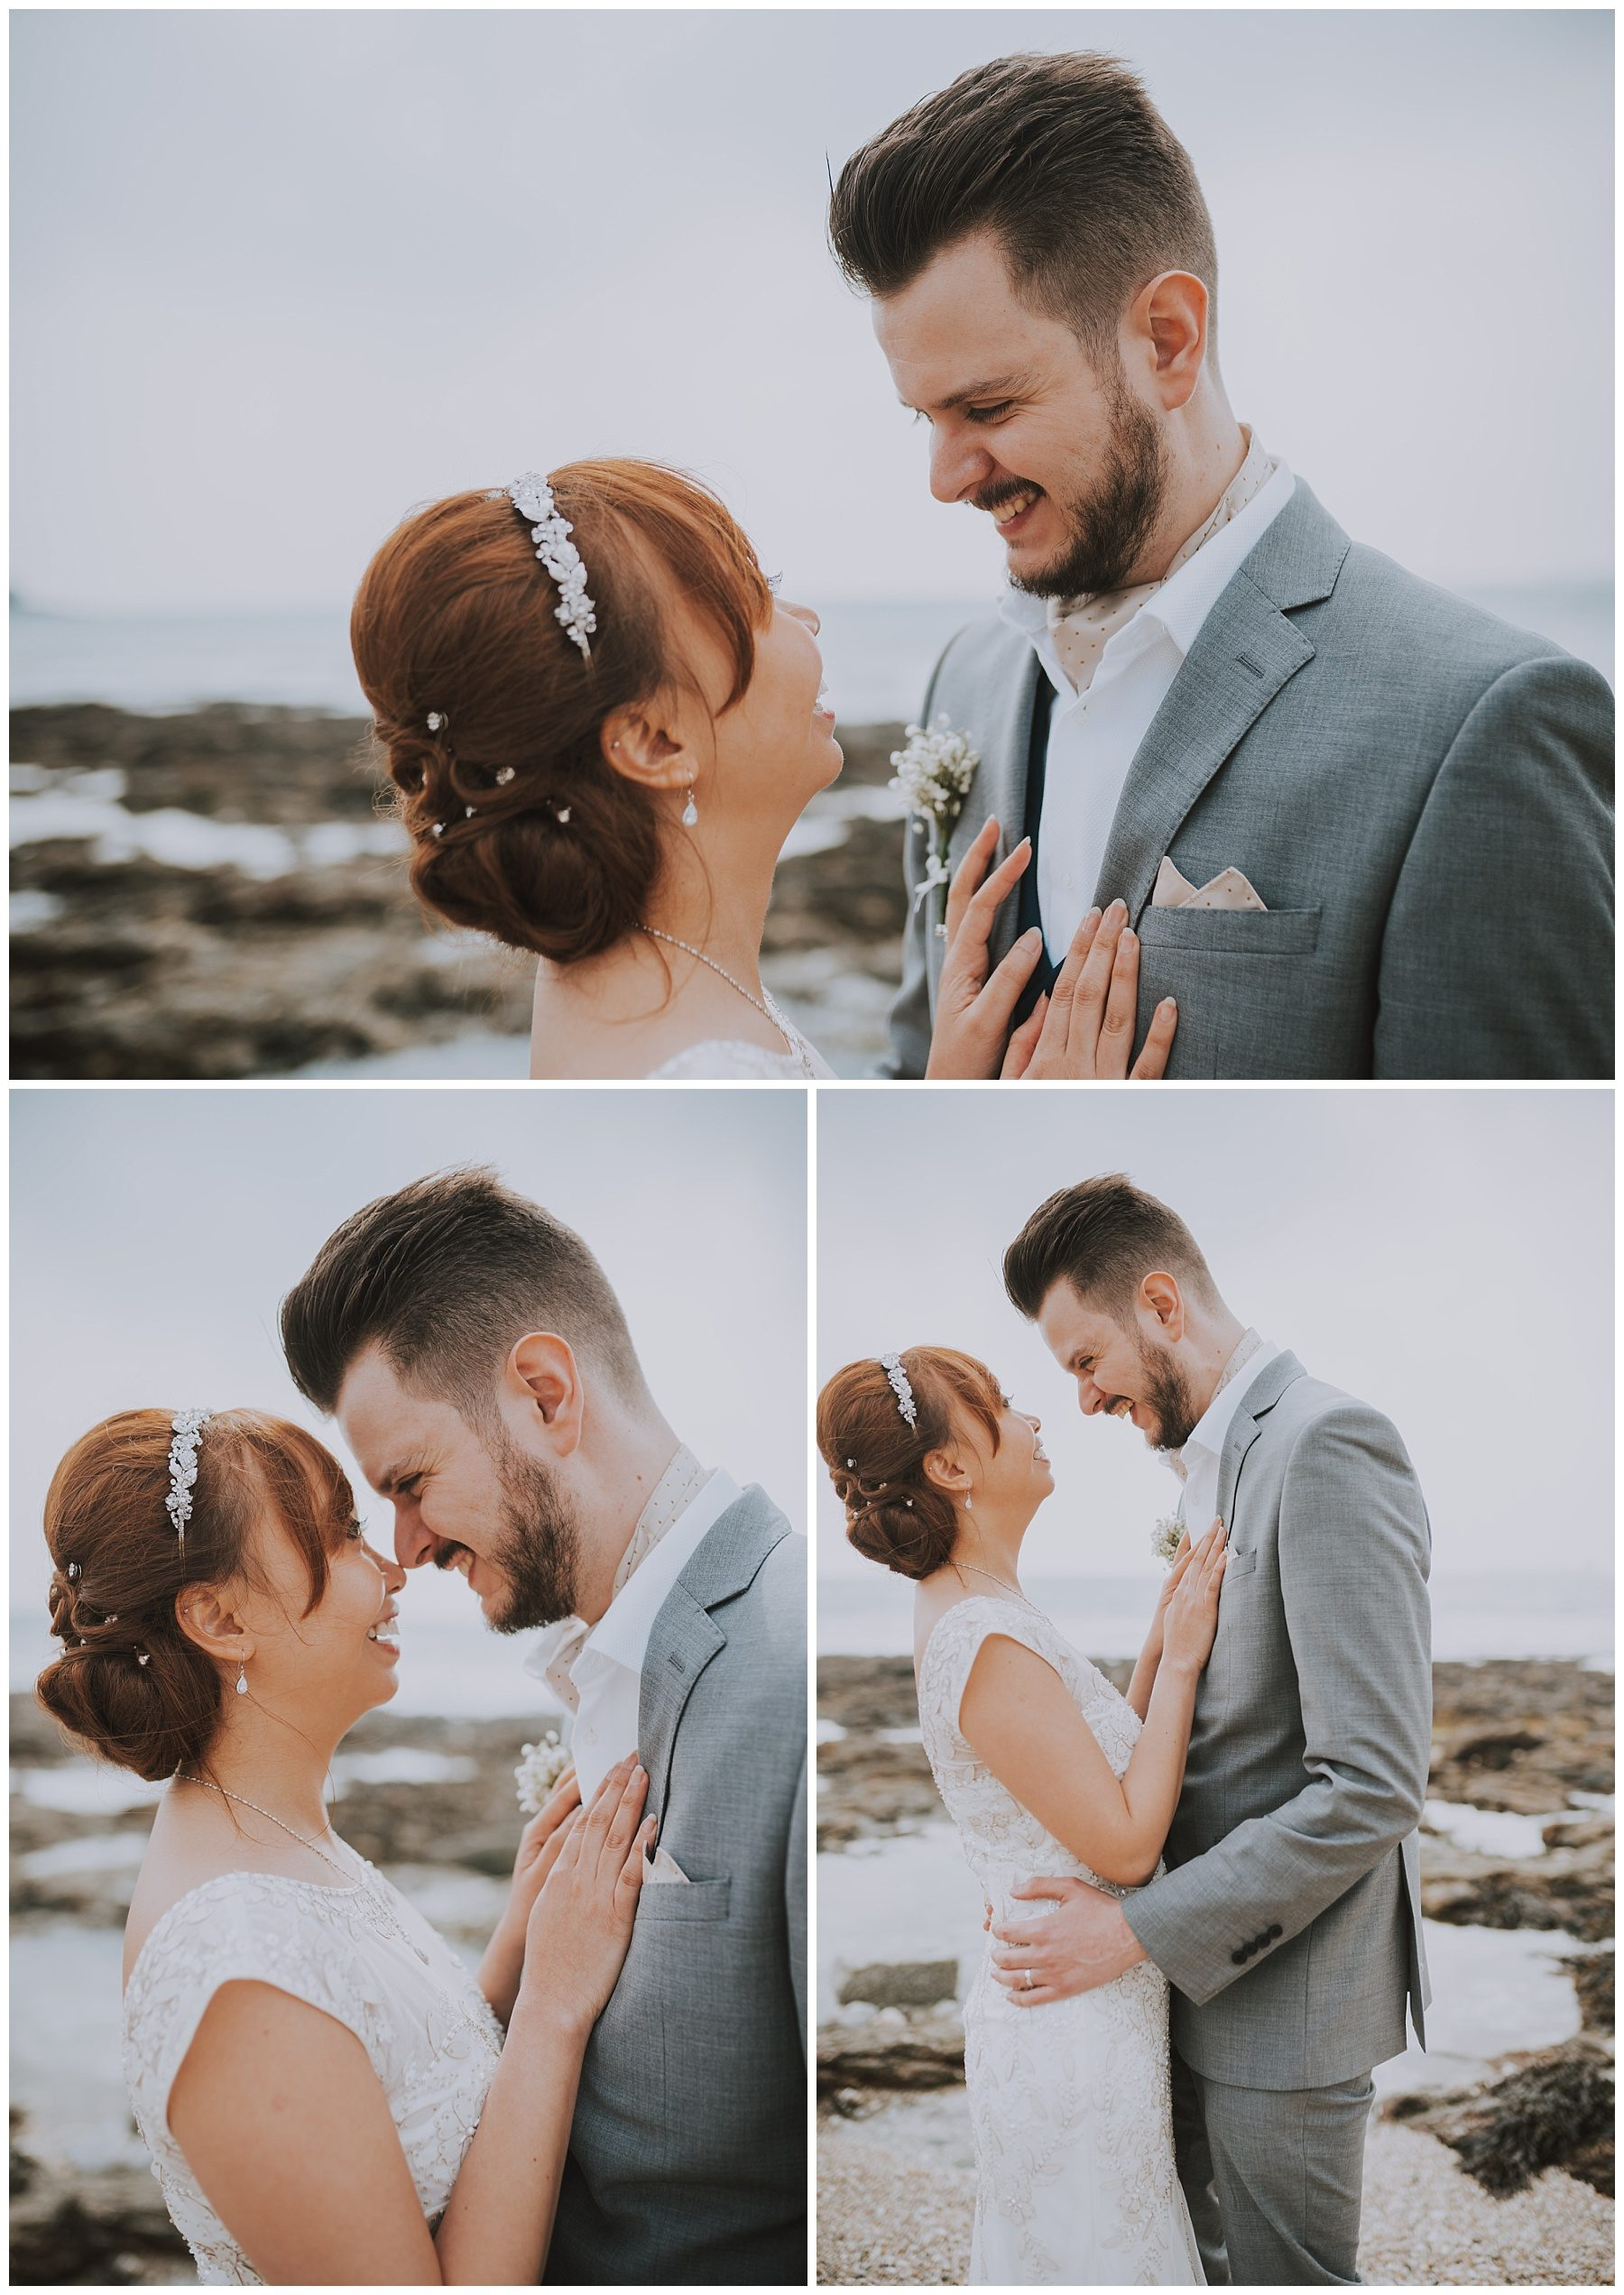 Falmouth beach wedding photography